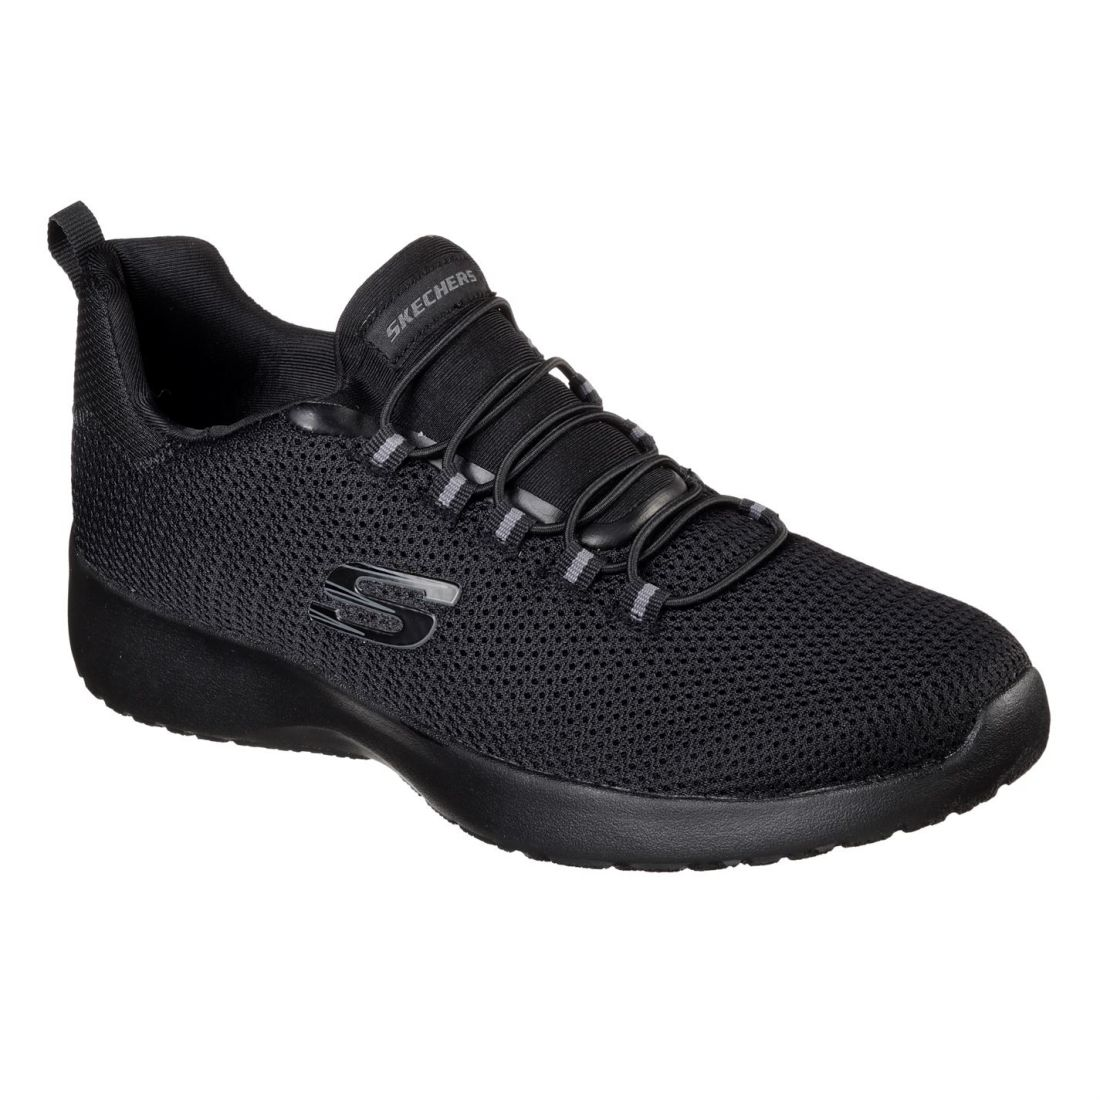 Skechers Mens Dynamight Lace Up Running shoes Low Top Trainers